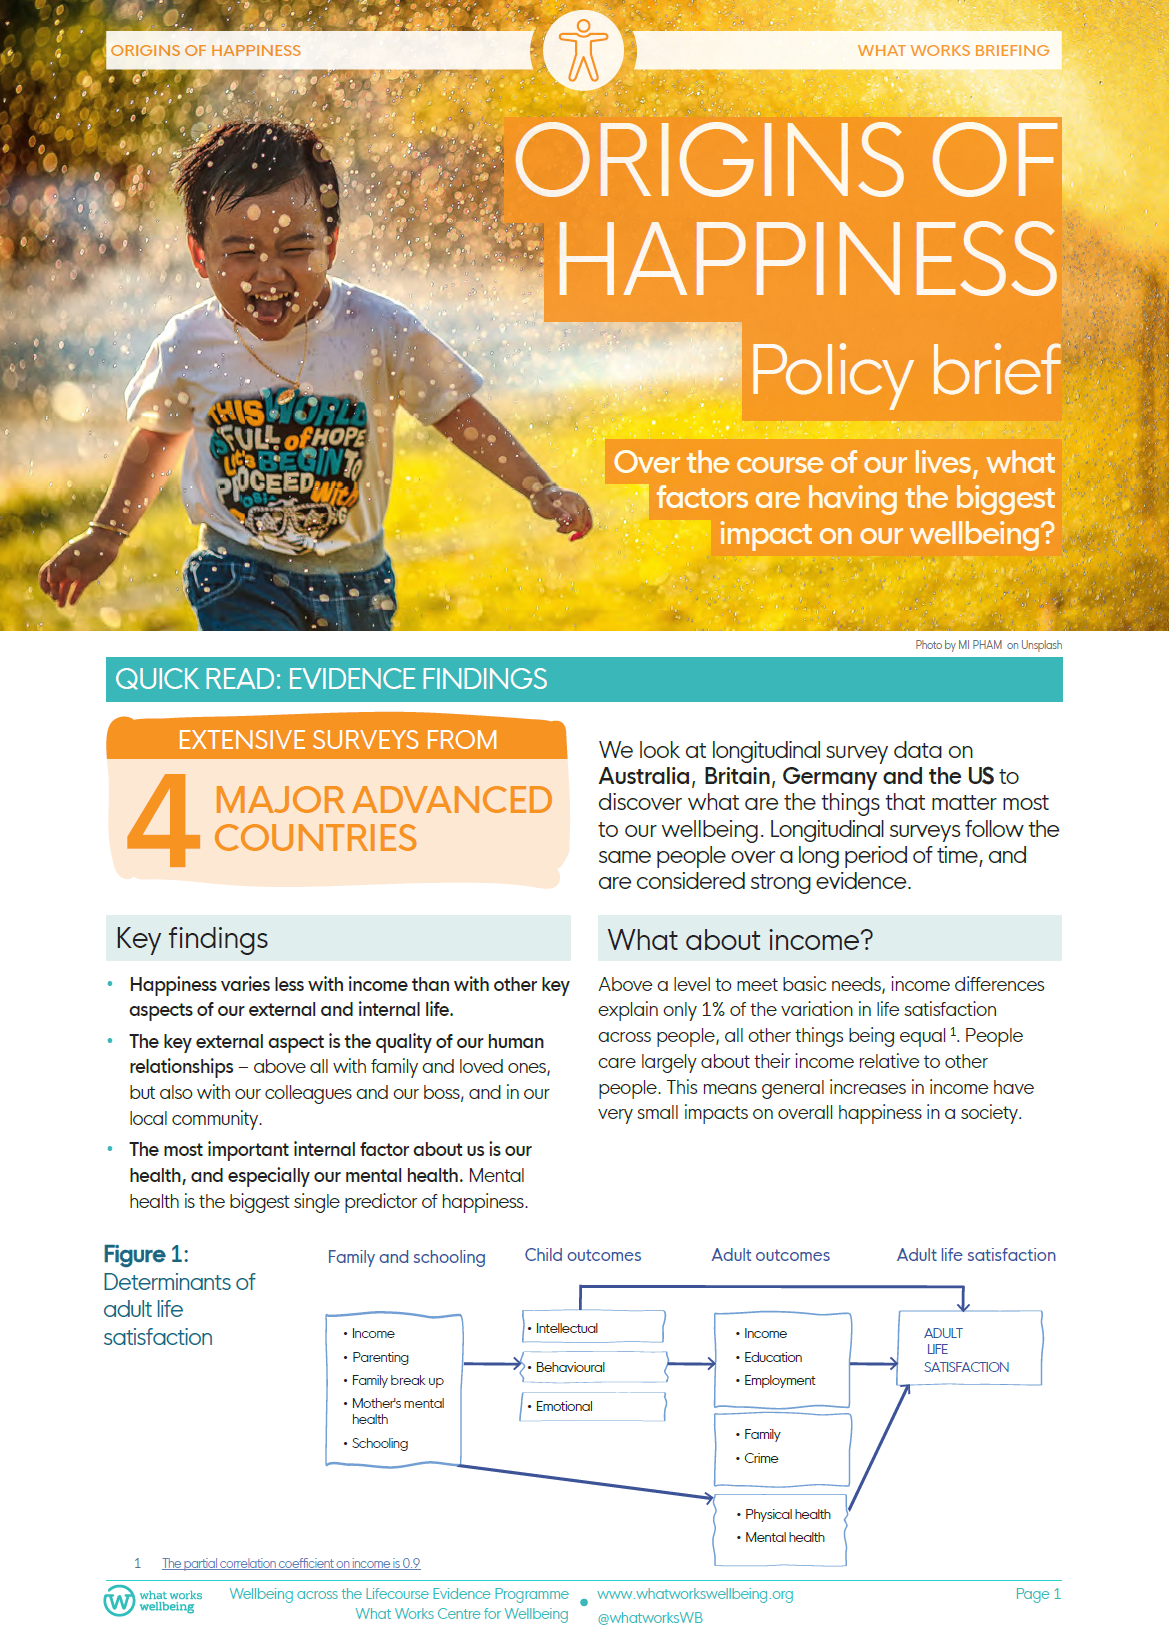 Origins of happiness: briefing